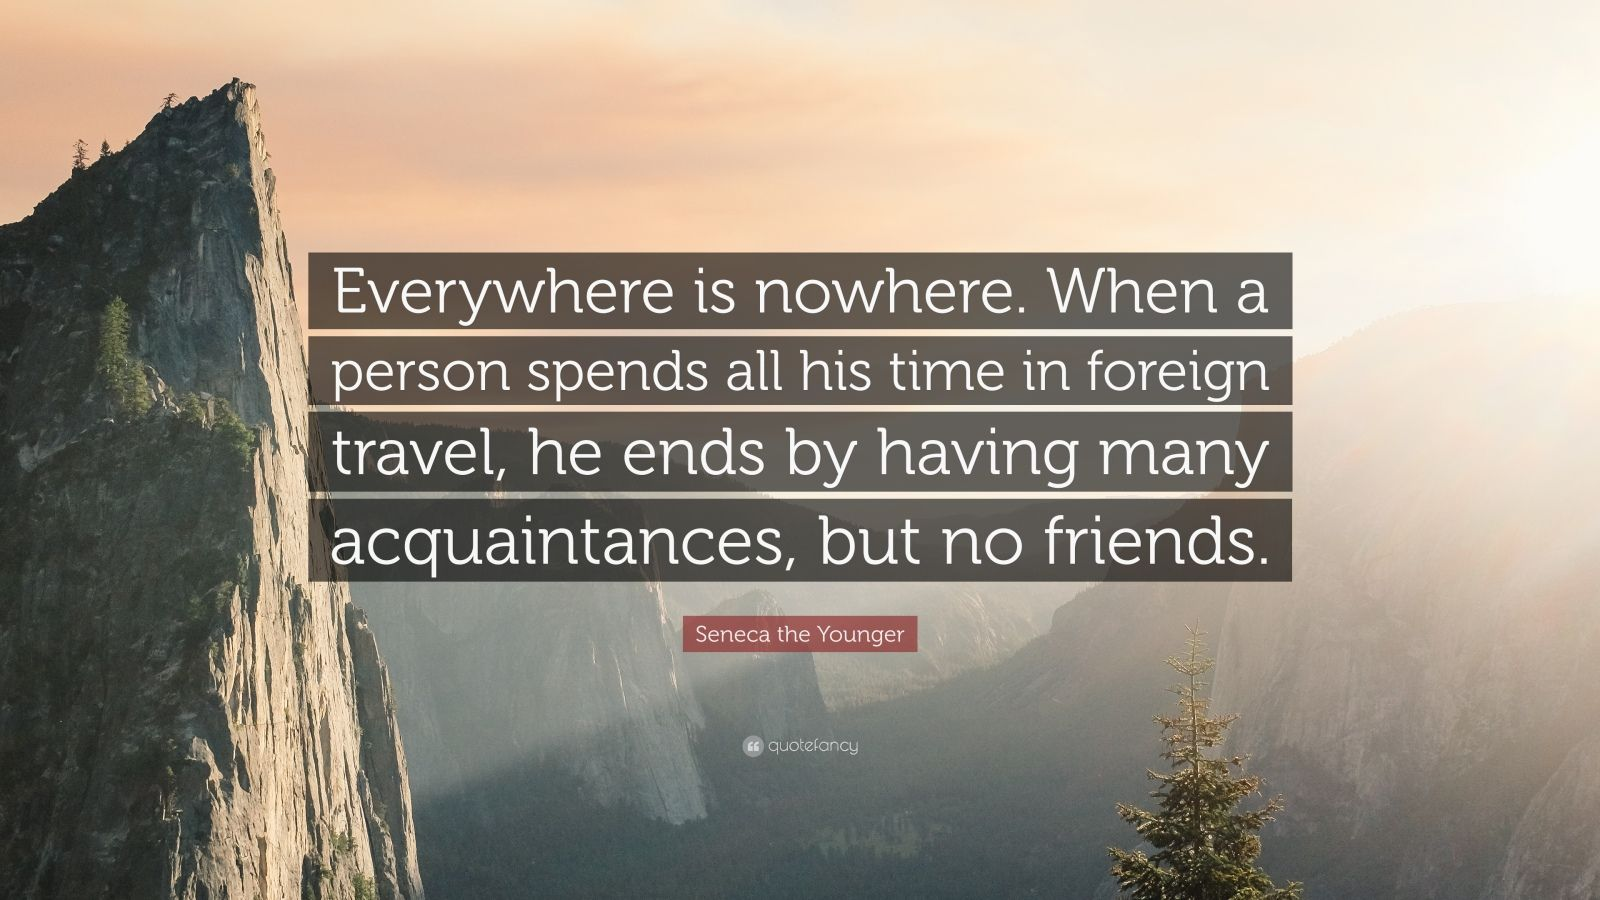 """Seneca the Younger Quote: """"Everywhere is nowhere. When a person spends all his time in foreign travel, he ends by having many acquaintances, but no friends."""""""